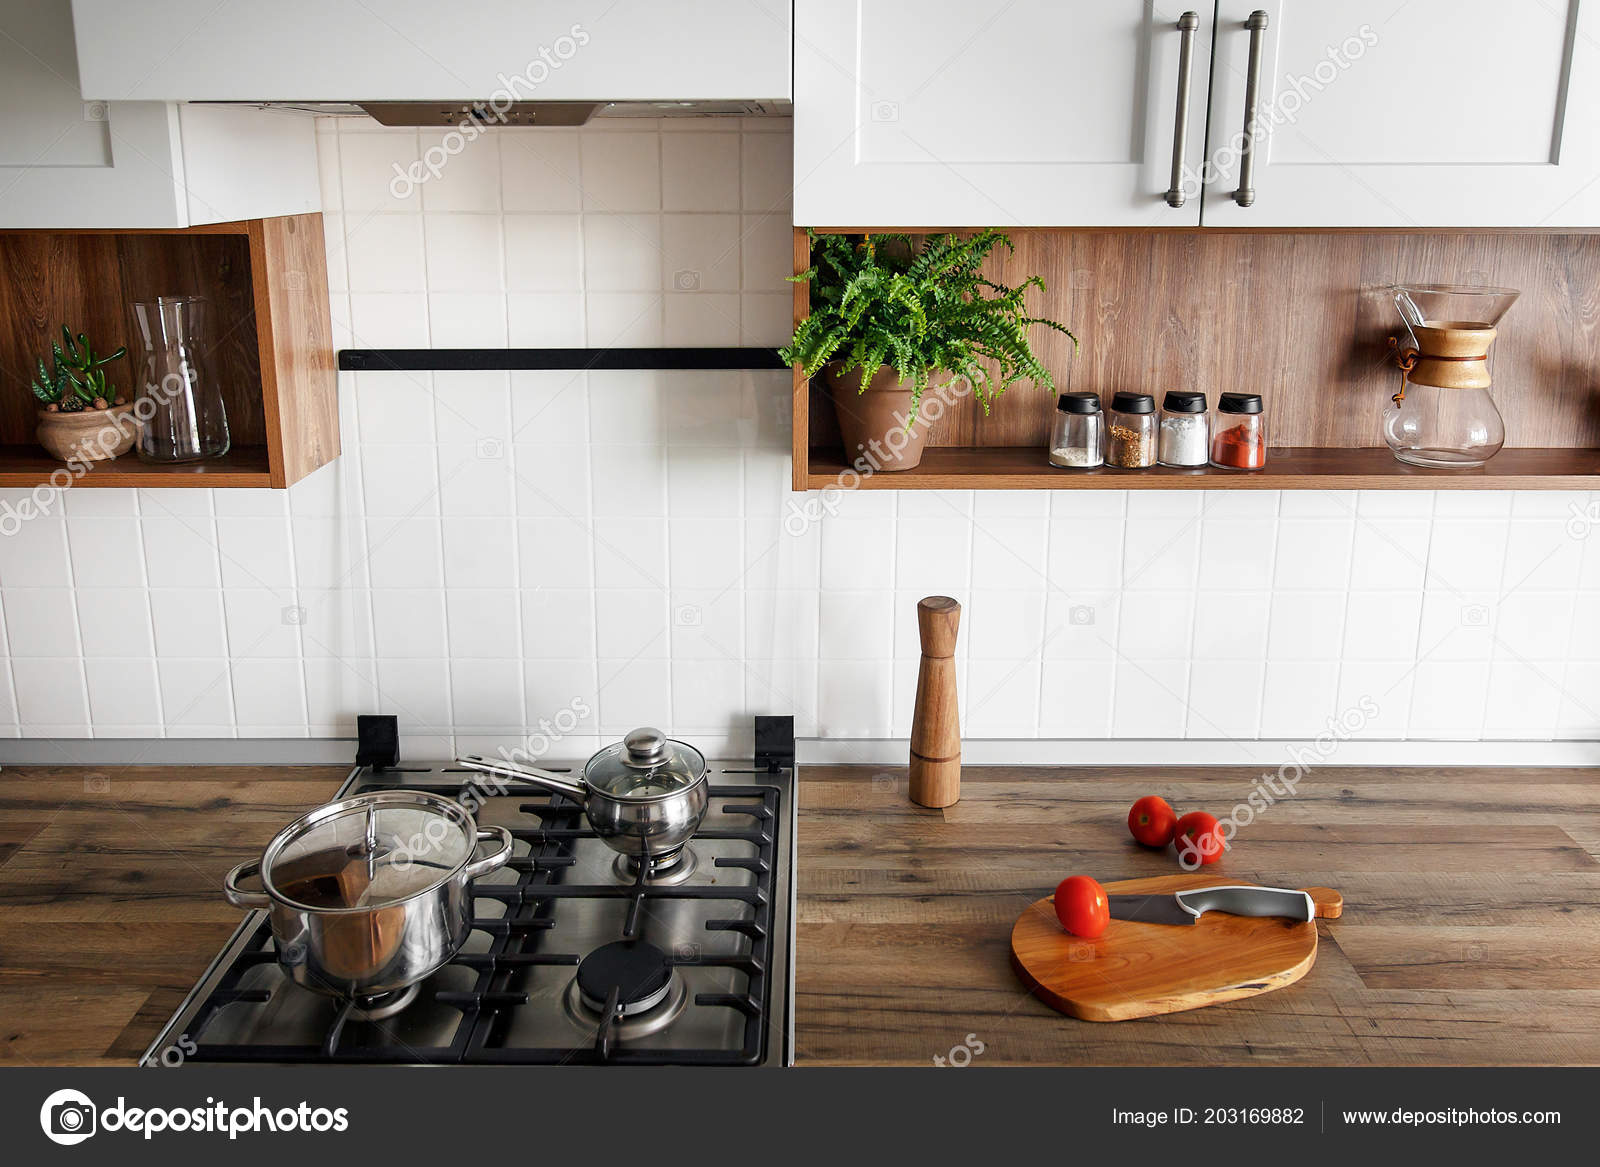 Wooden Board Knife Tomatoes Modern Kitchen Countertop Shelves Spices